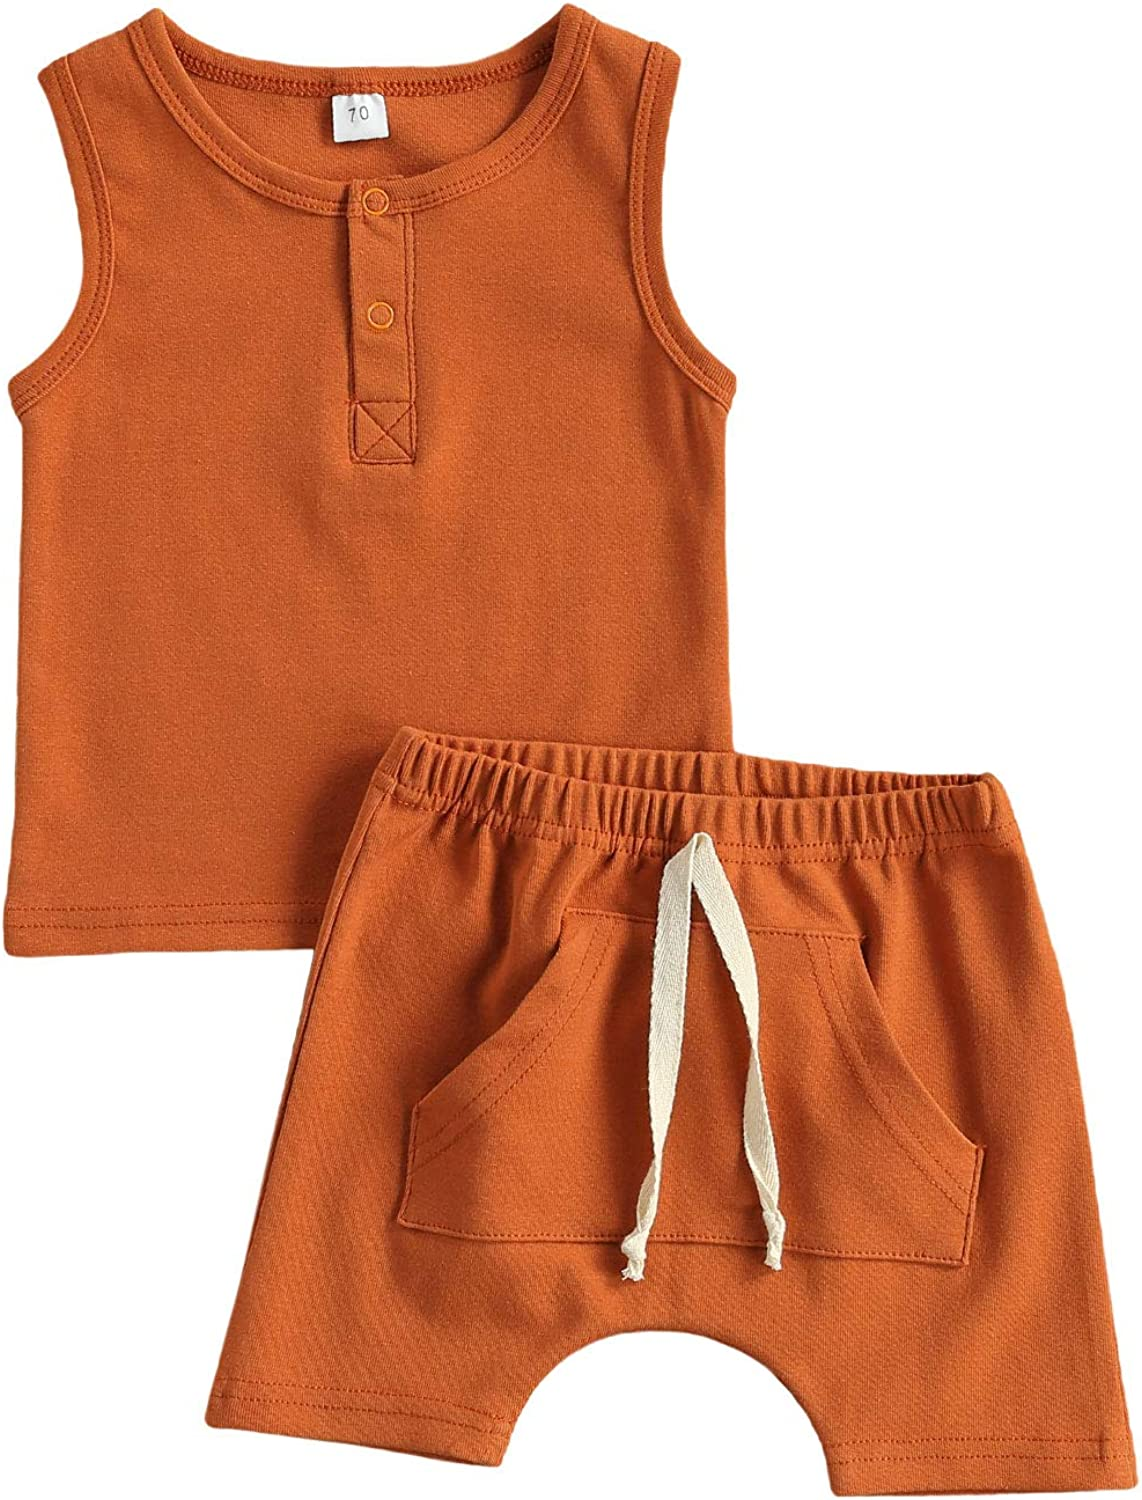 Pybcvrrd Infant Baby Boys Short Sets Summer Outfit Sleeveless Tank Top T-Shirt + Shorts Solid 2 Piece Clothes Boys